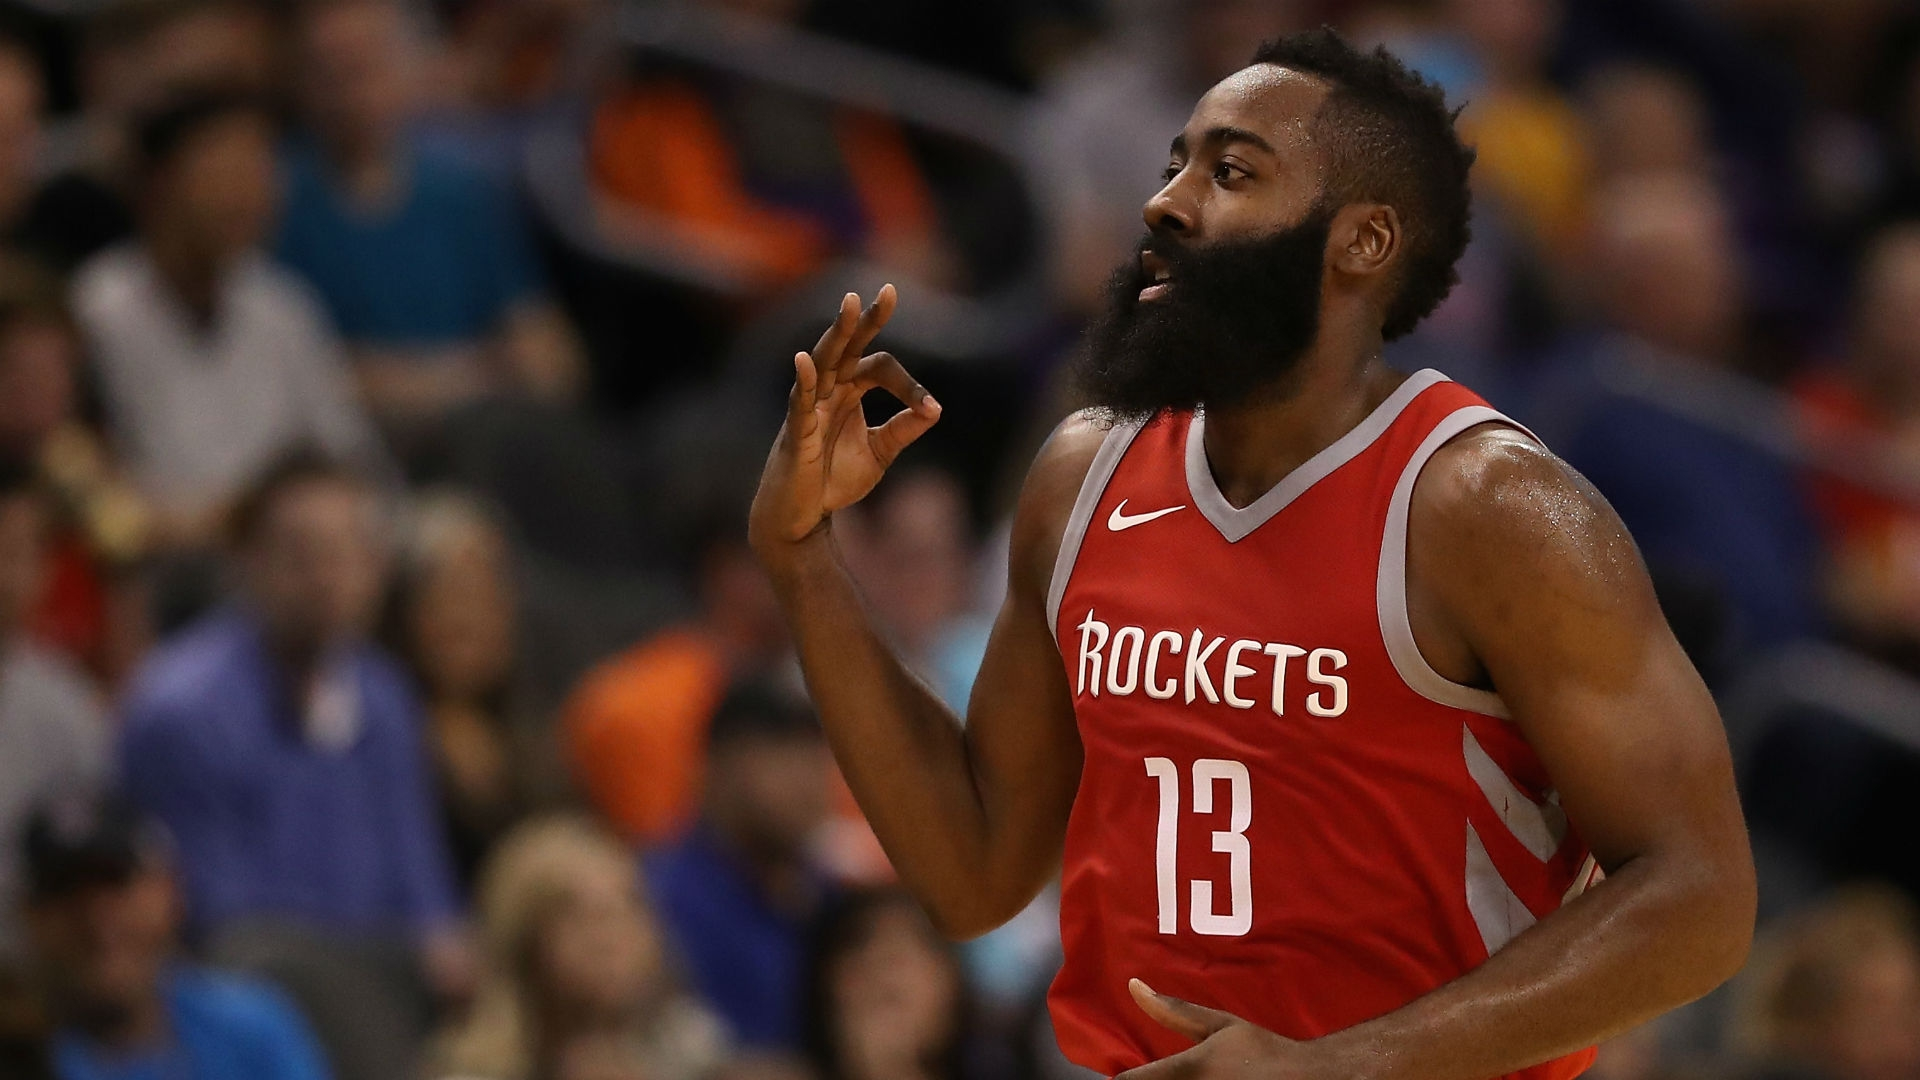 james-harden-022318-ftr-getty.jpg